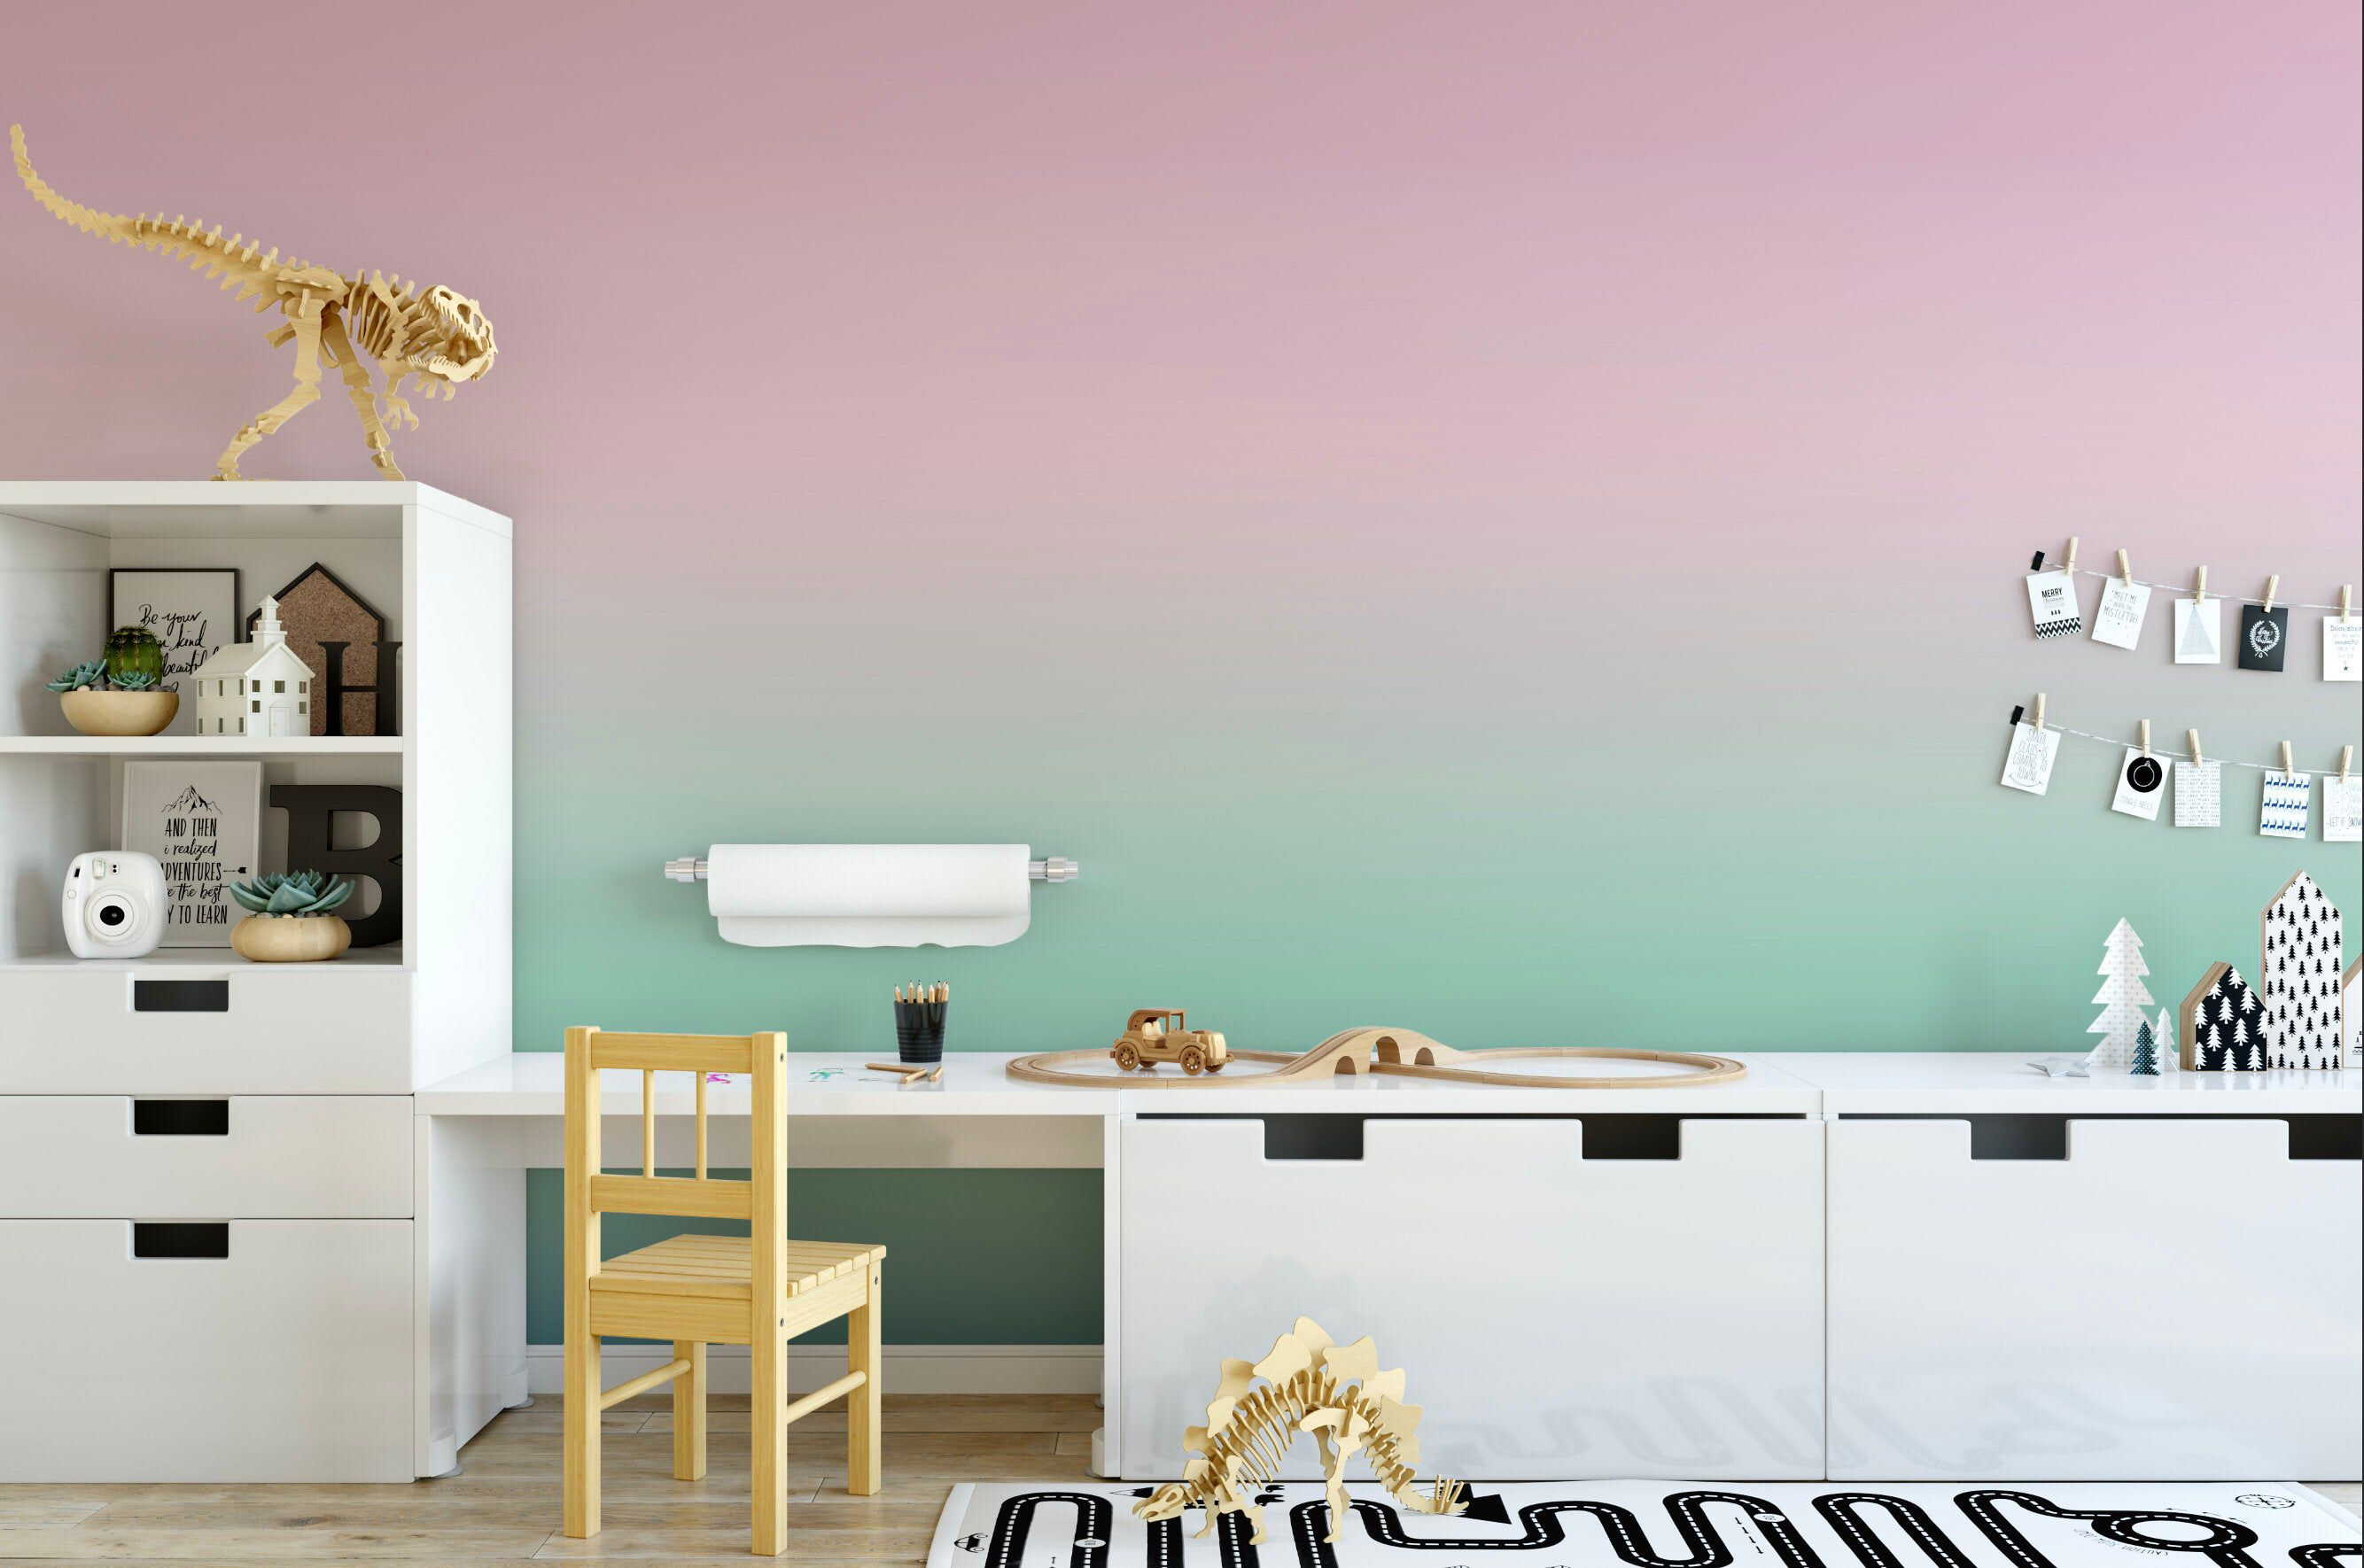 Blushing Cactus Ombre Wallpaper, Soft Muted Dip Dye Wall